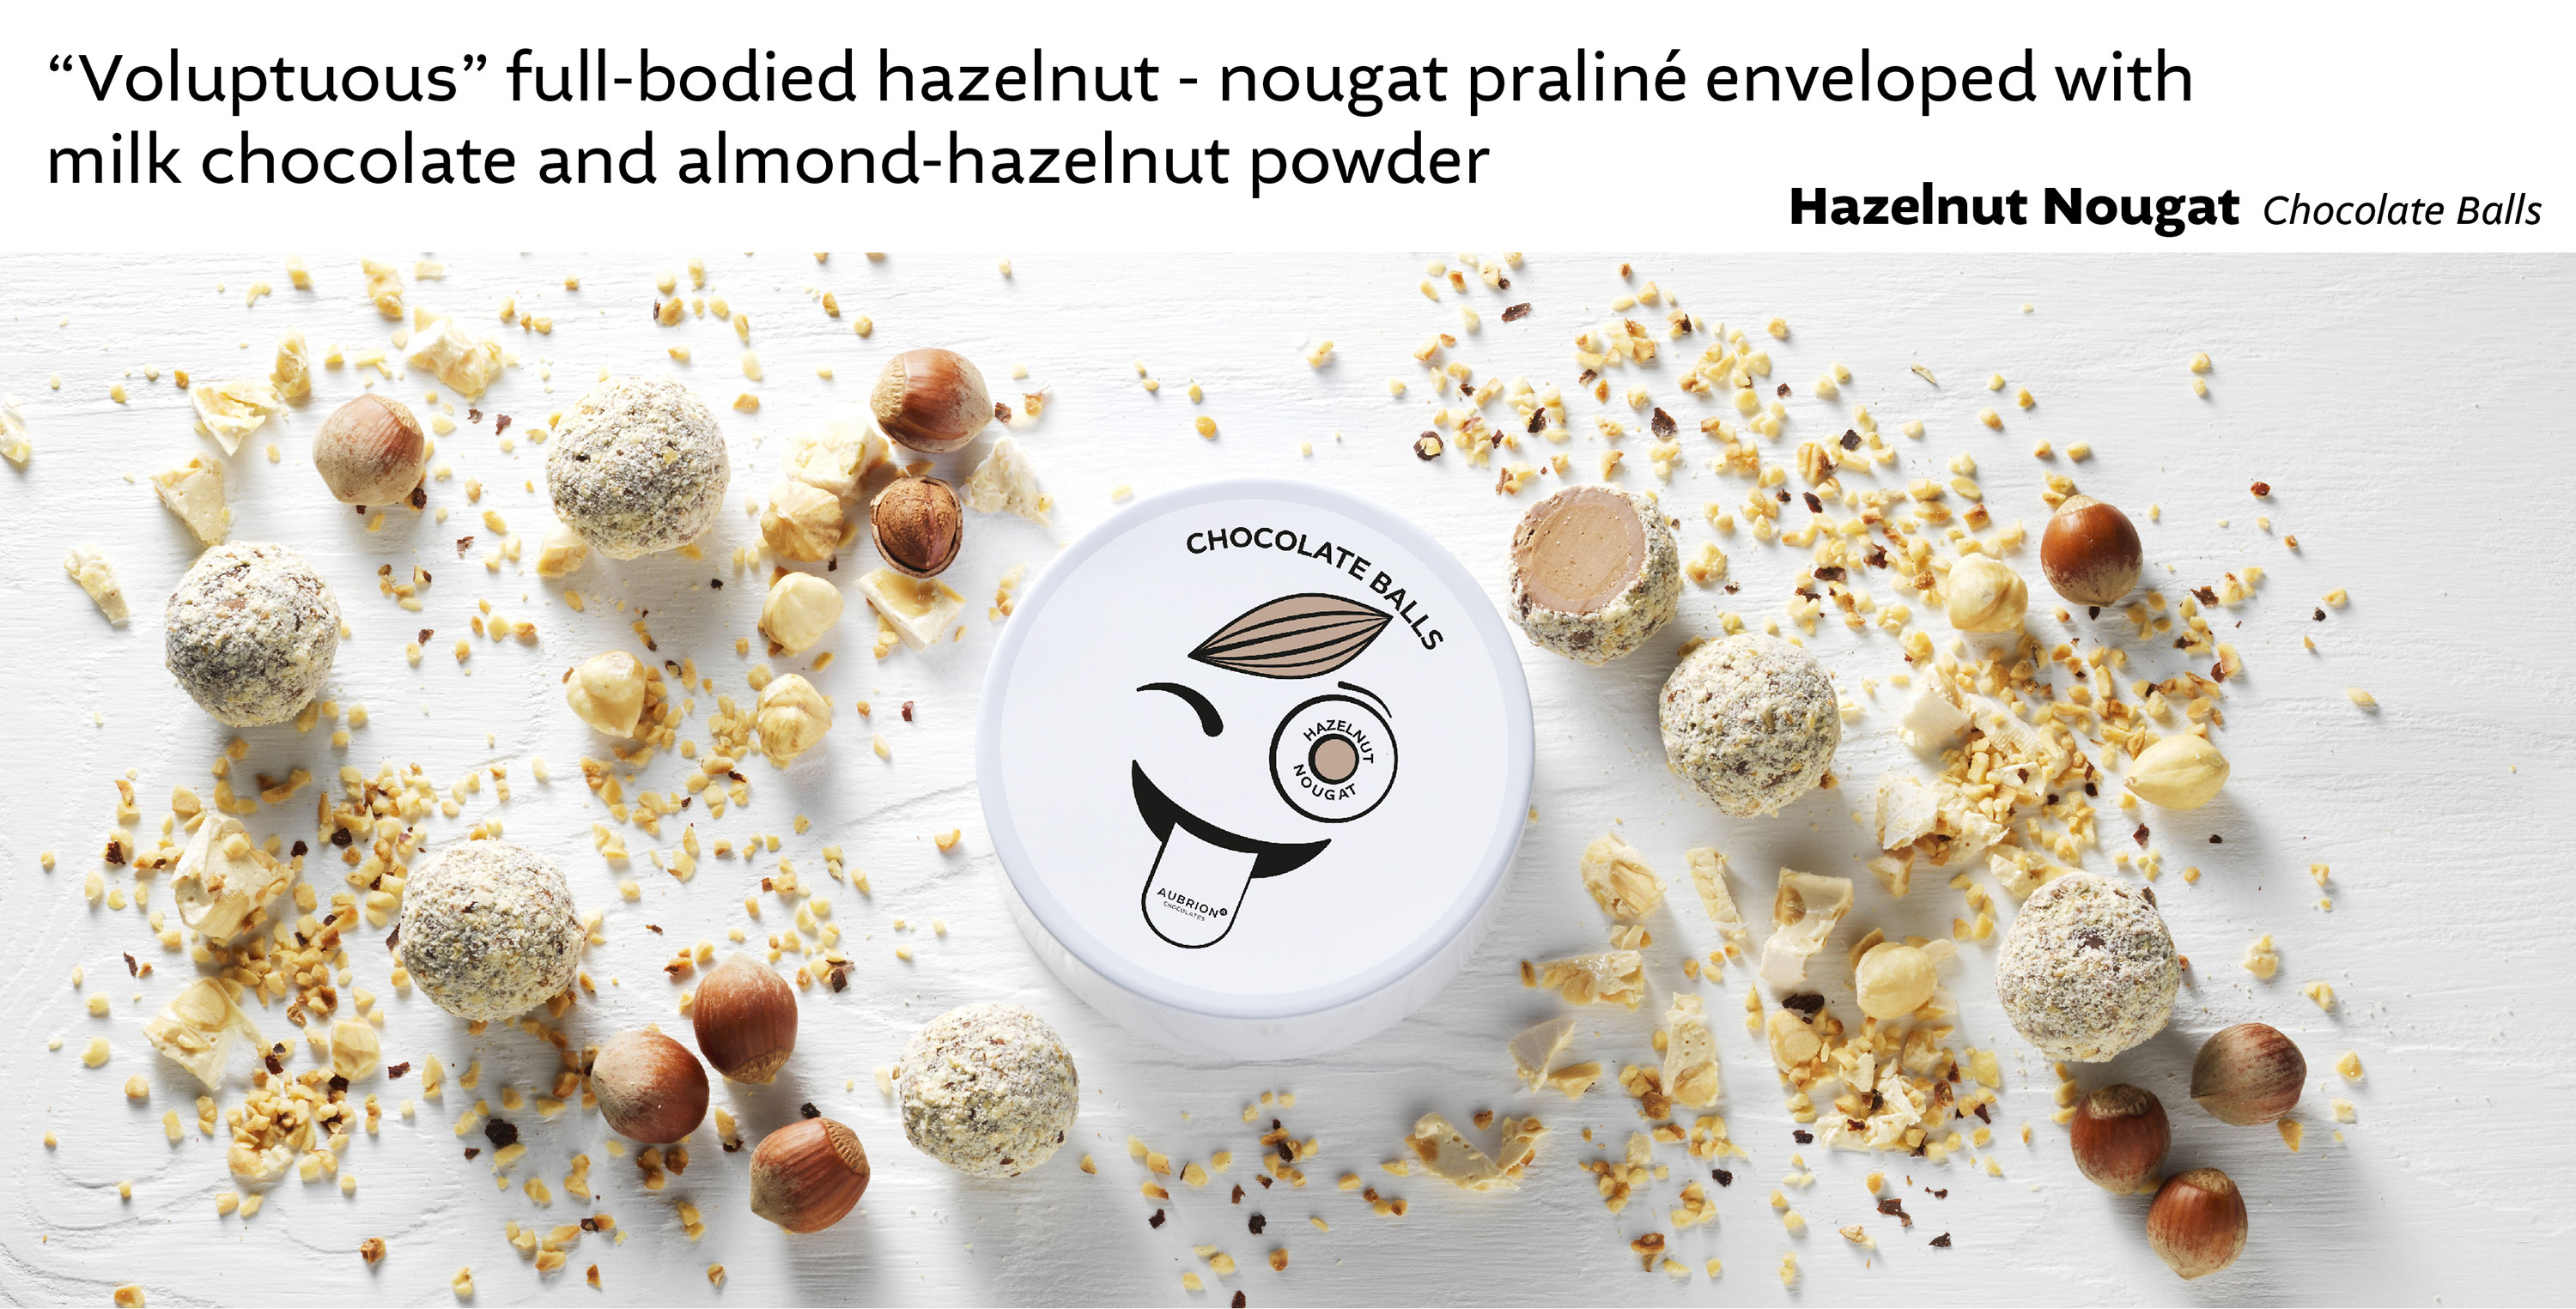 Voluptuous full-bodied hazelnut-nougat praliné enveloped with milk chocloate and almond-hazelnut powder - Hazelnut Nougat Chocolate Balls